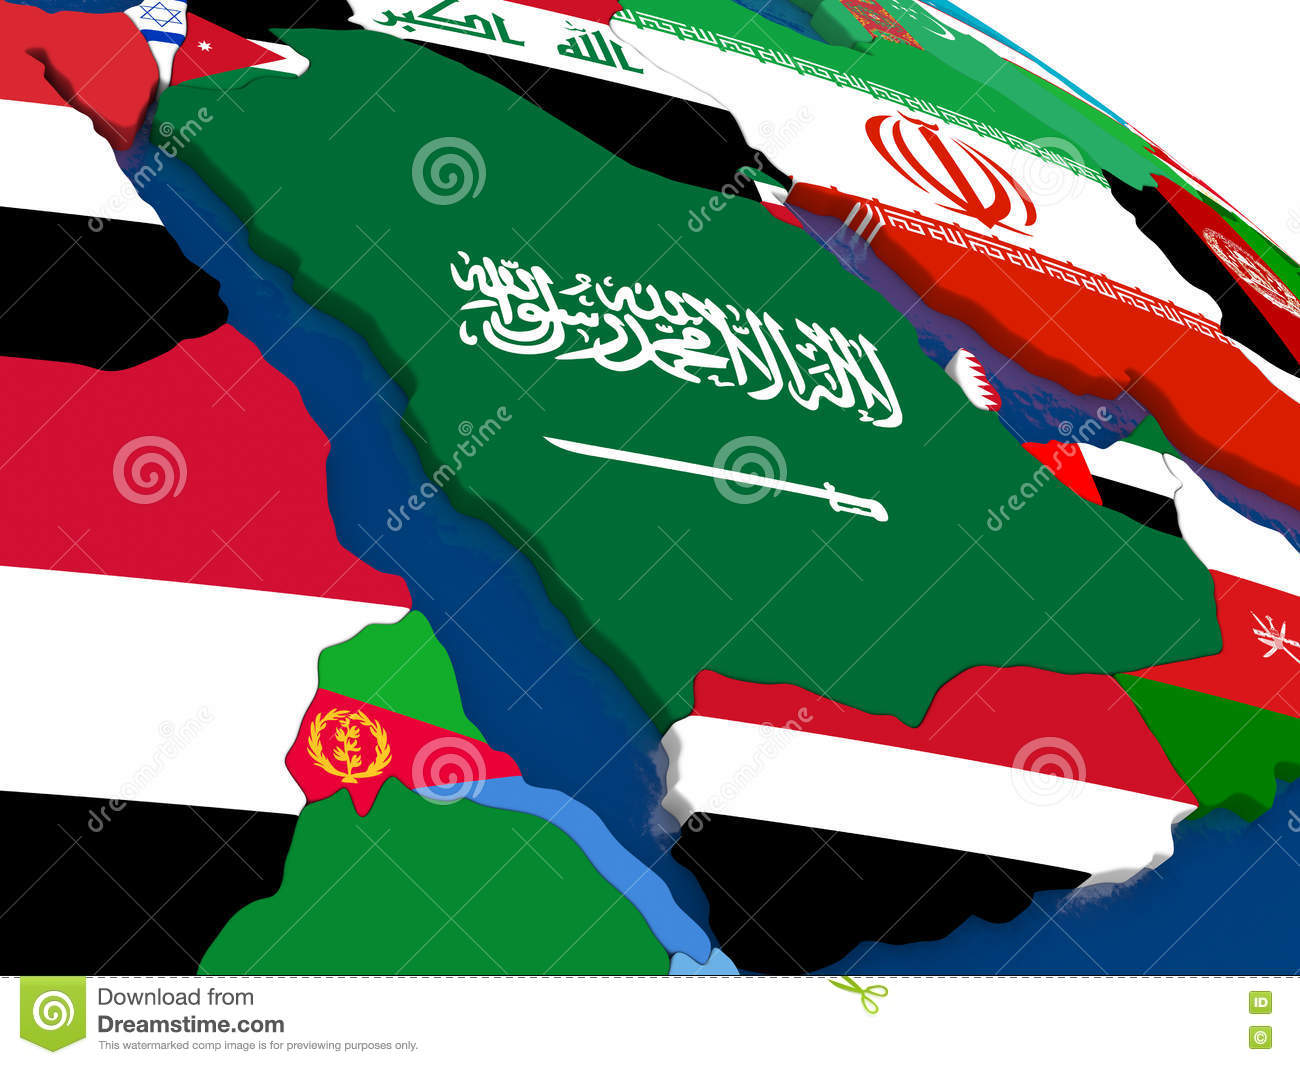 Picture of: Arab Peninsula On 3d Map With Flags Stock Illustration Illustration Of Flag Yemeni 73330201